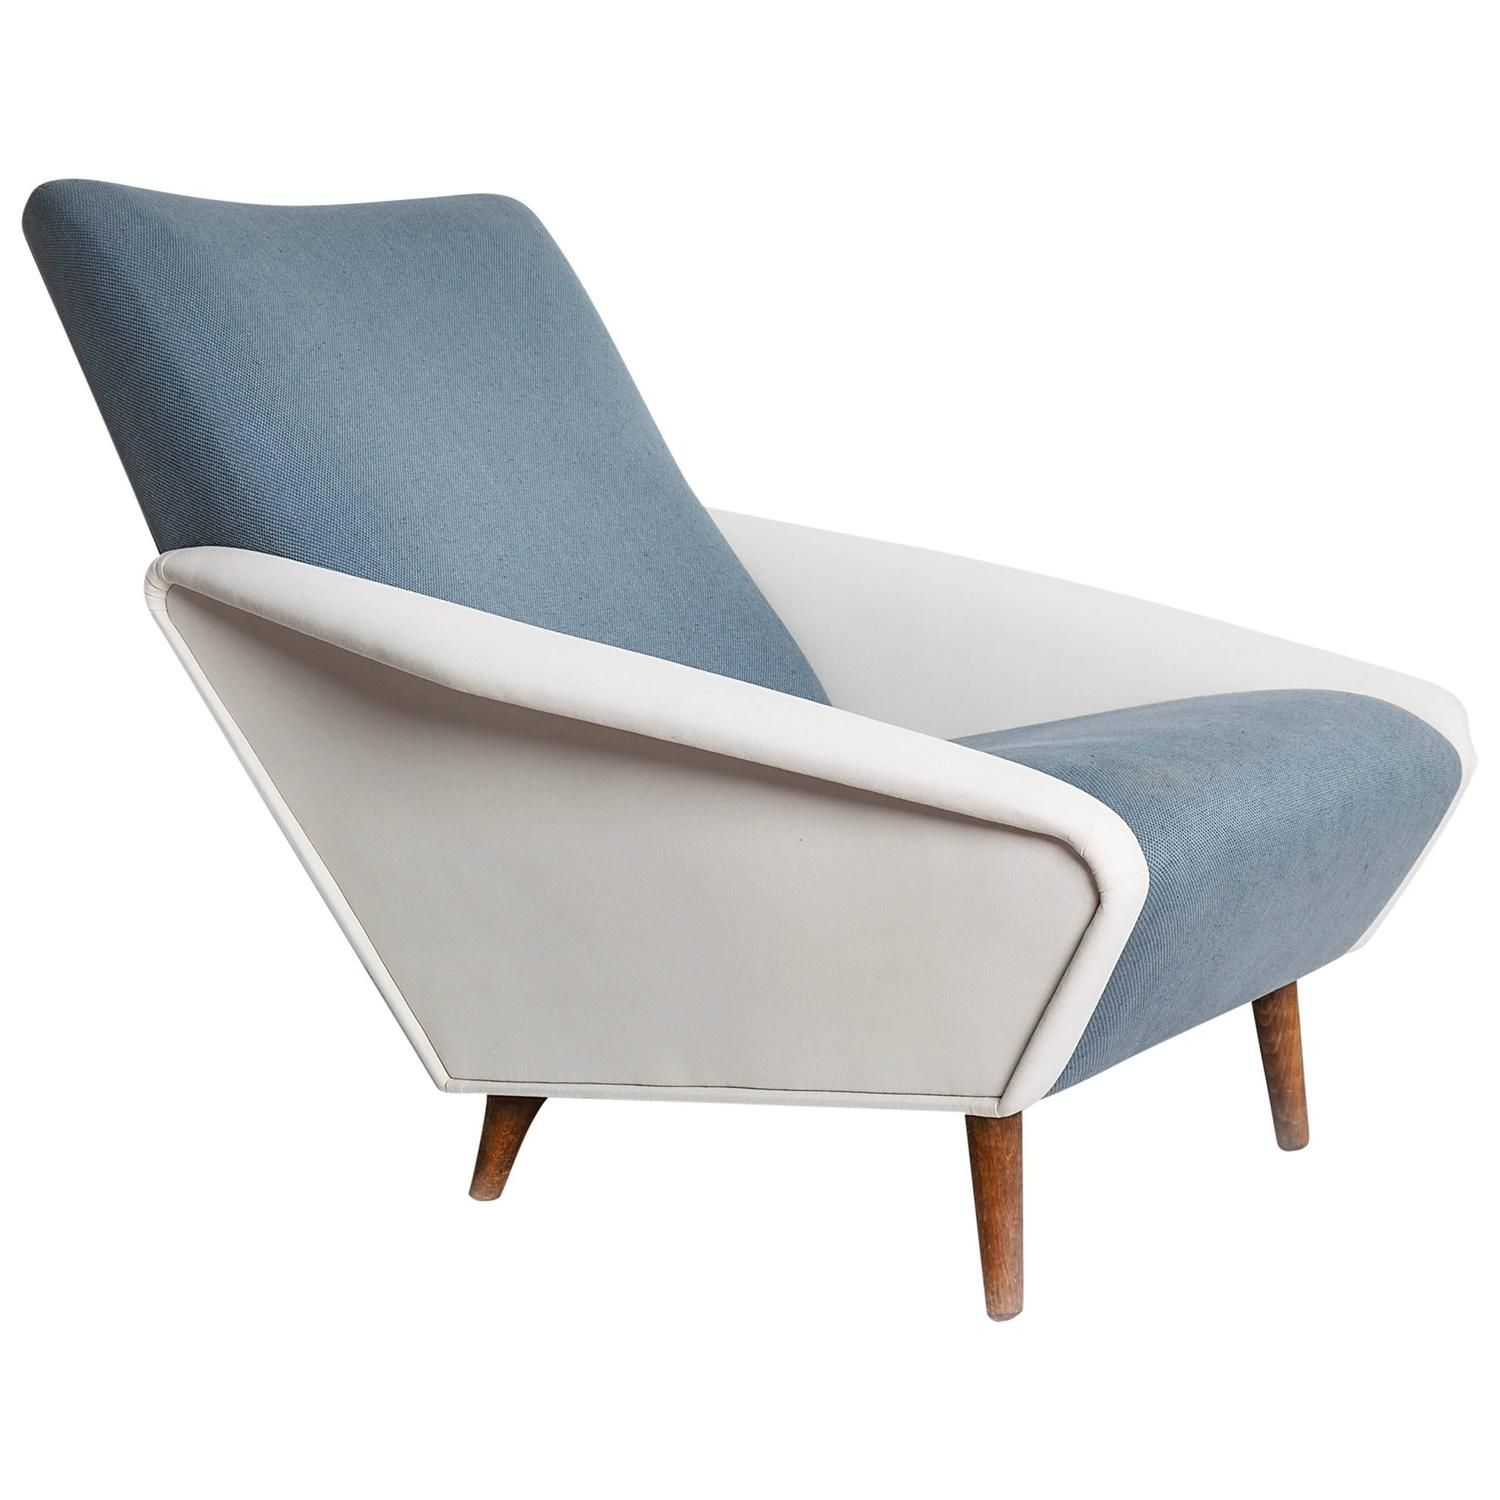 Antique lounge chairs - 807 Distex Lounge Chair By Gio Ponti From A Unique Collection Of